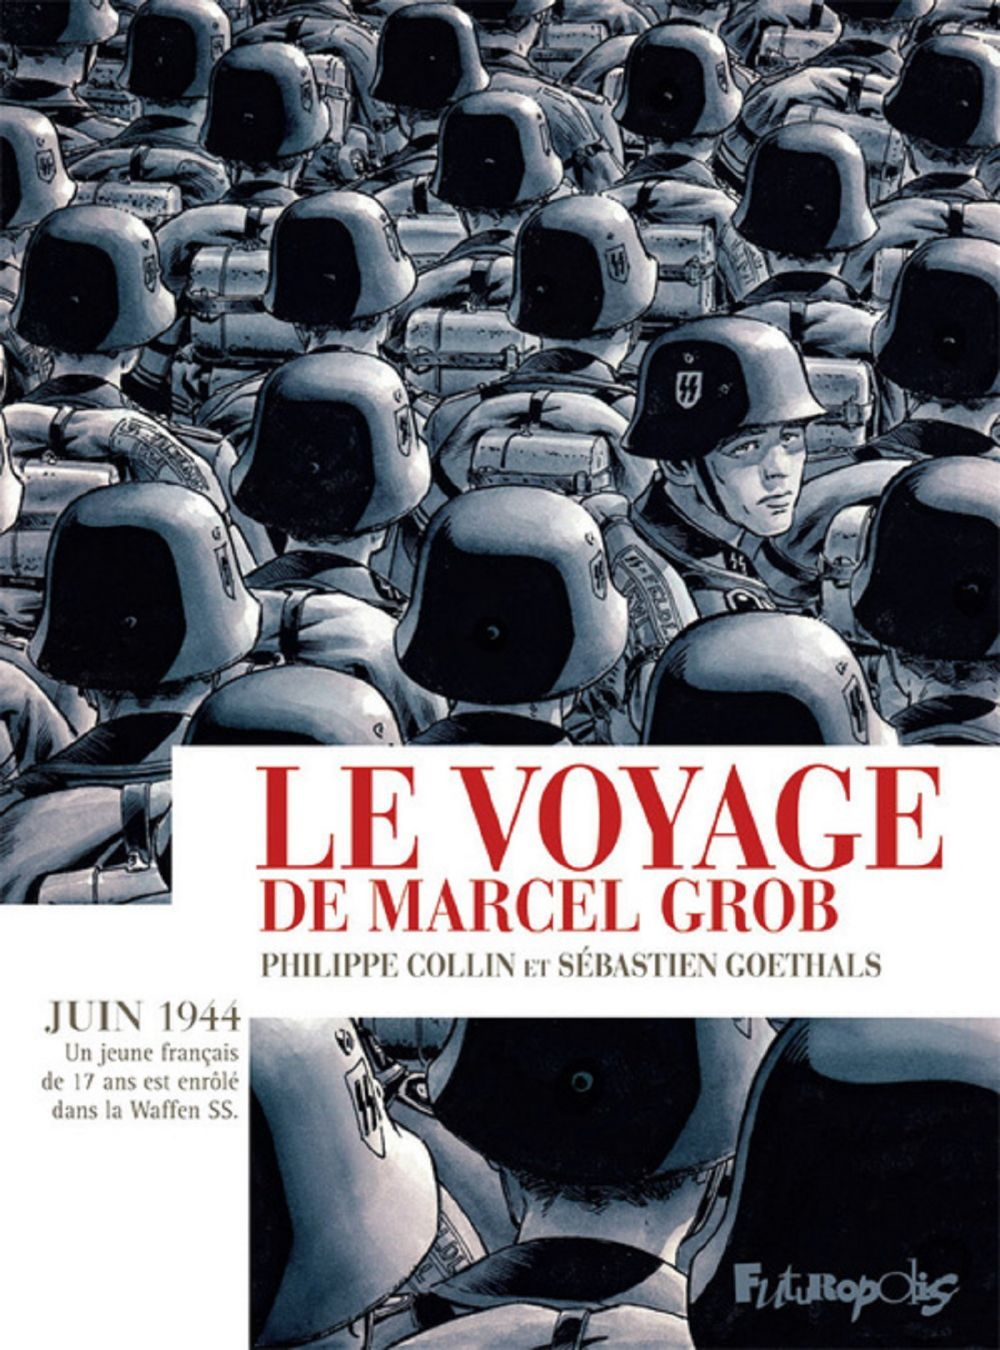 Le voyage de Marcel Grob | Goethals, Sébastien. Auteur